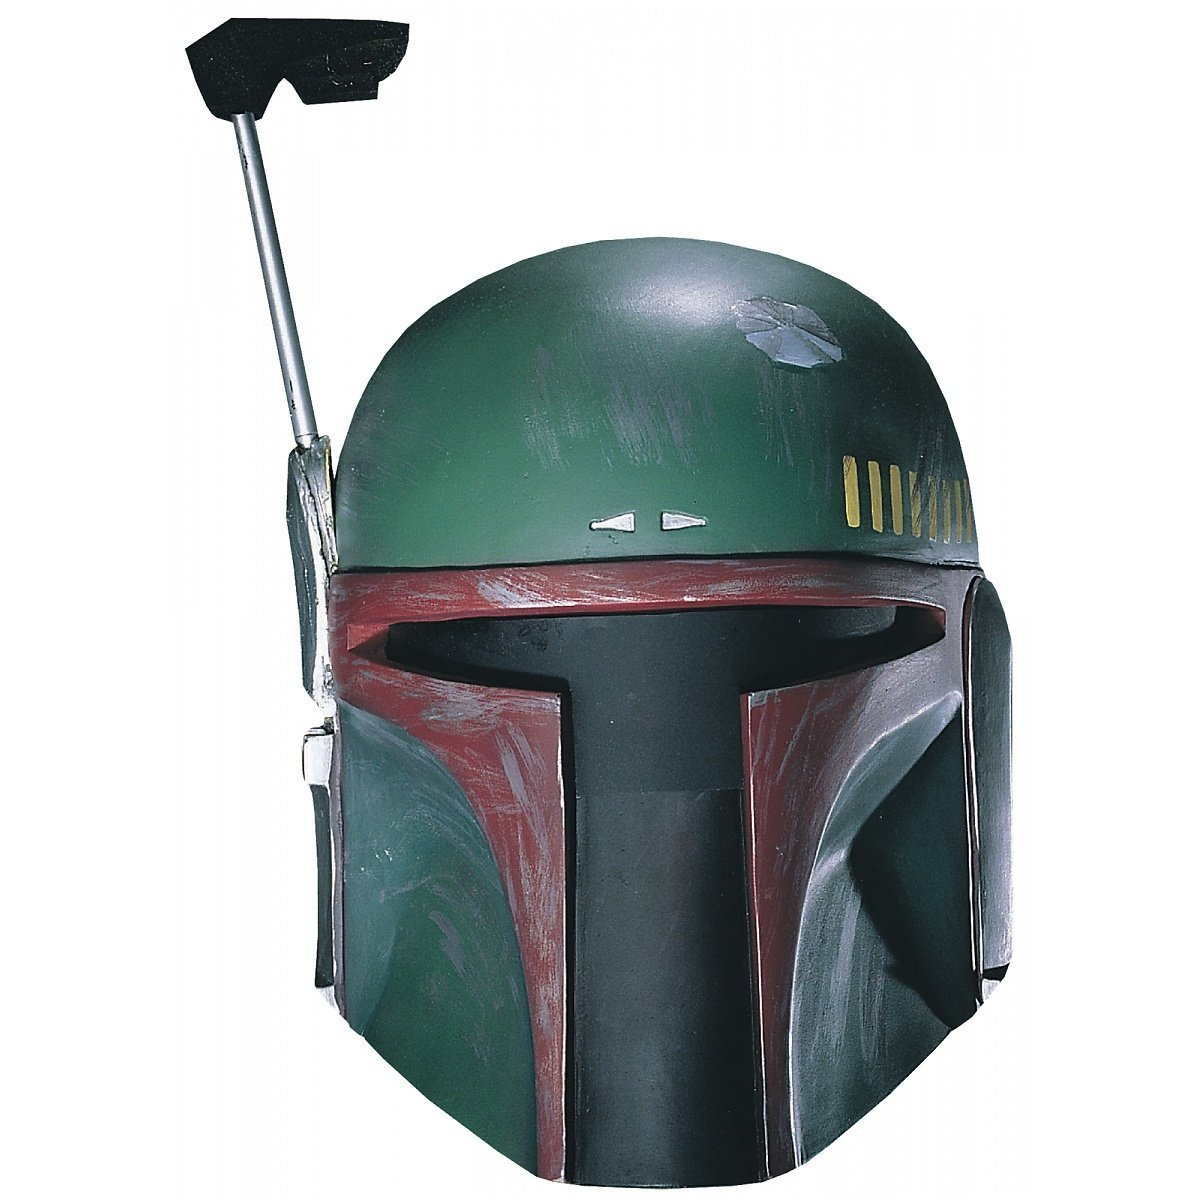 Become The Best Bounty Hunter In The Galaxy With Helmet